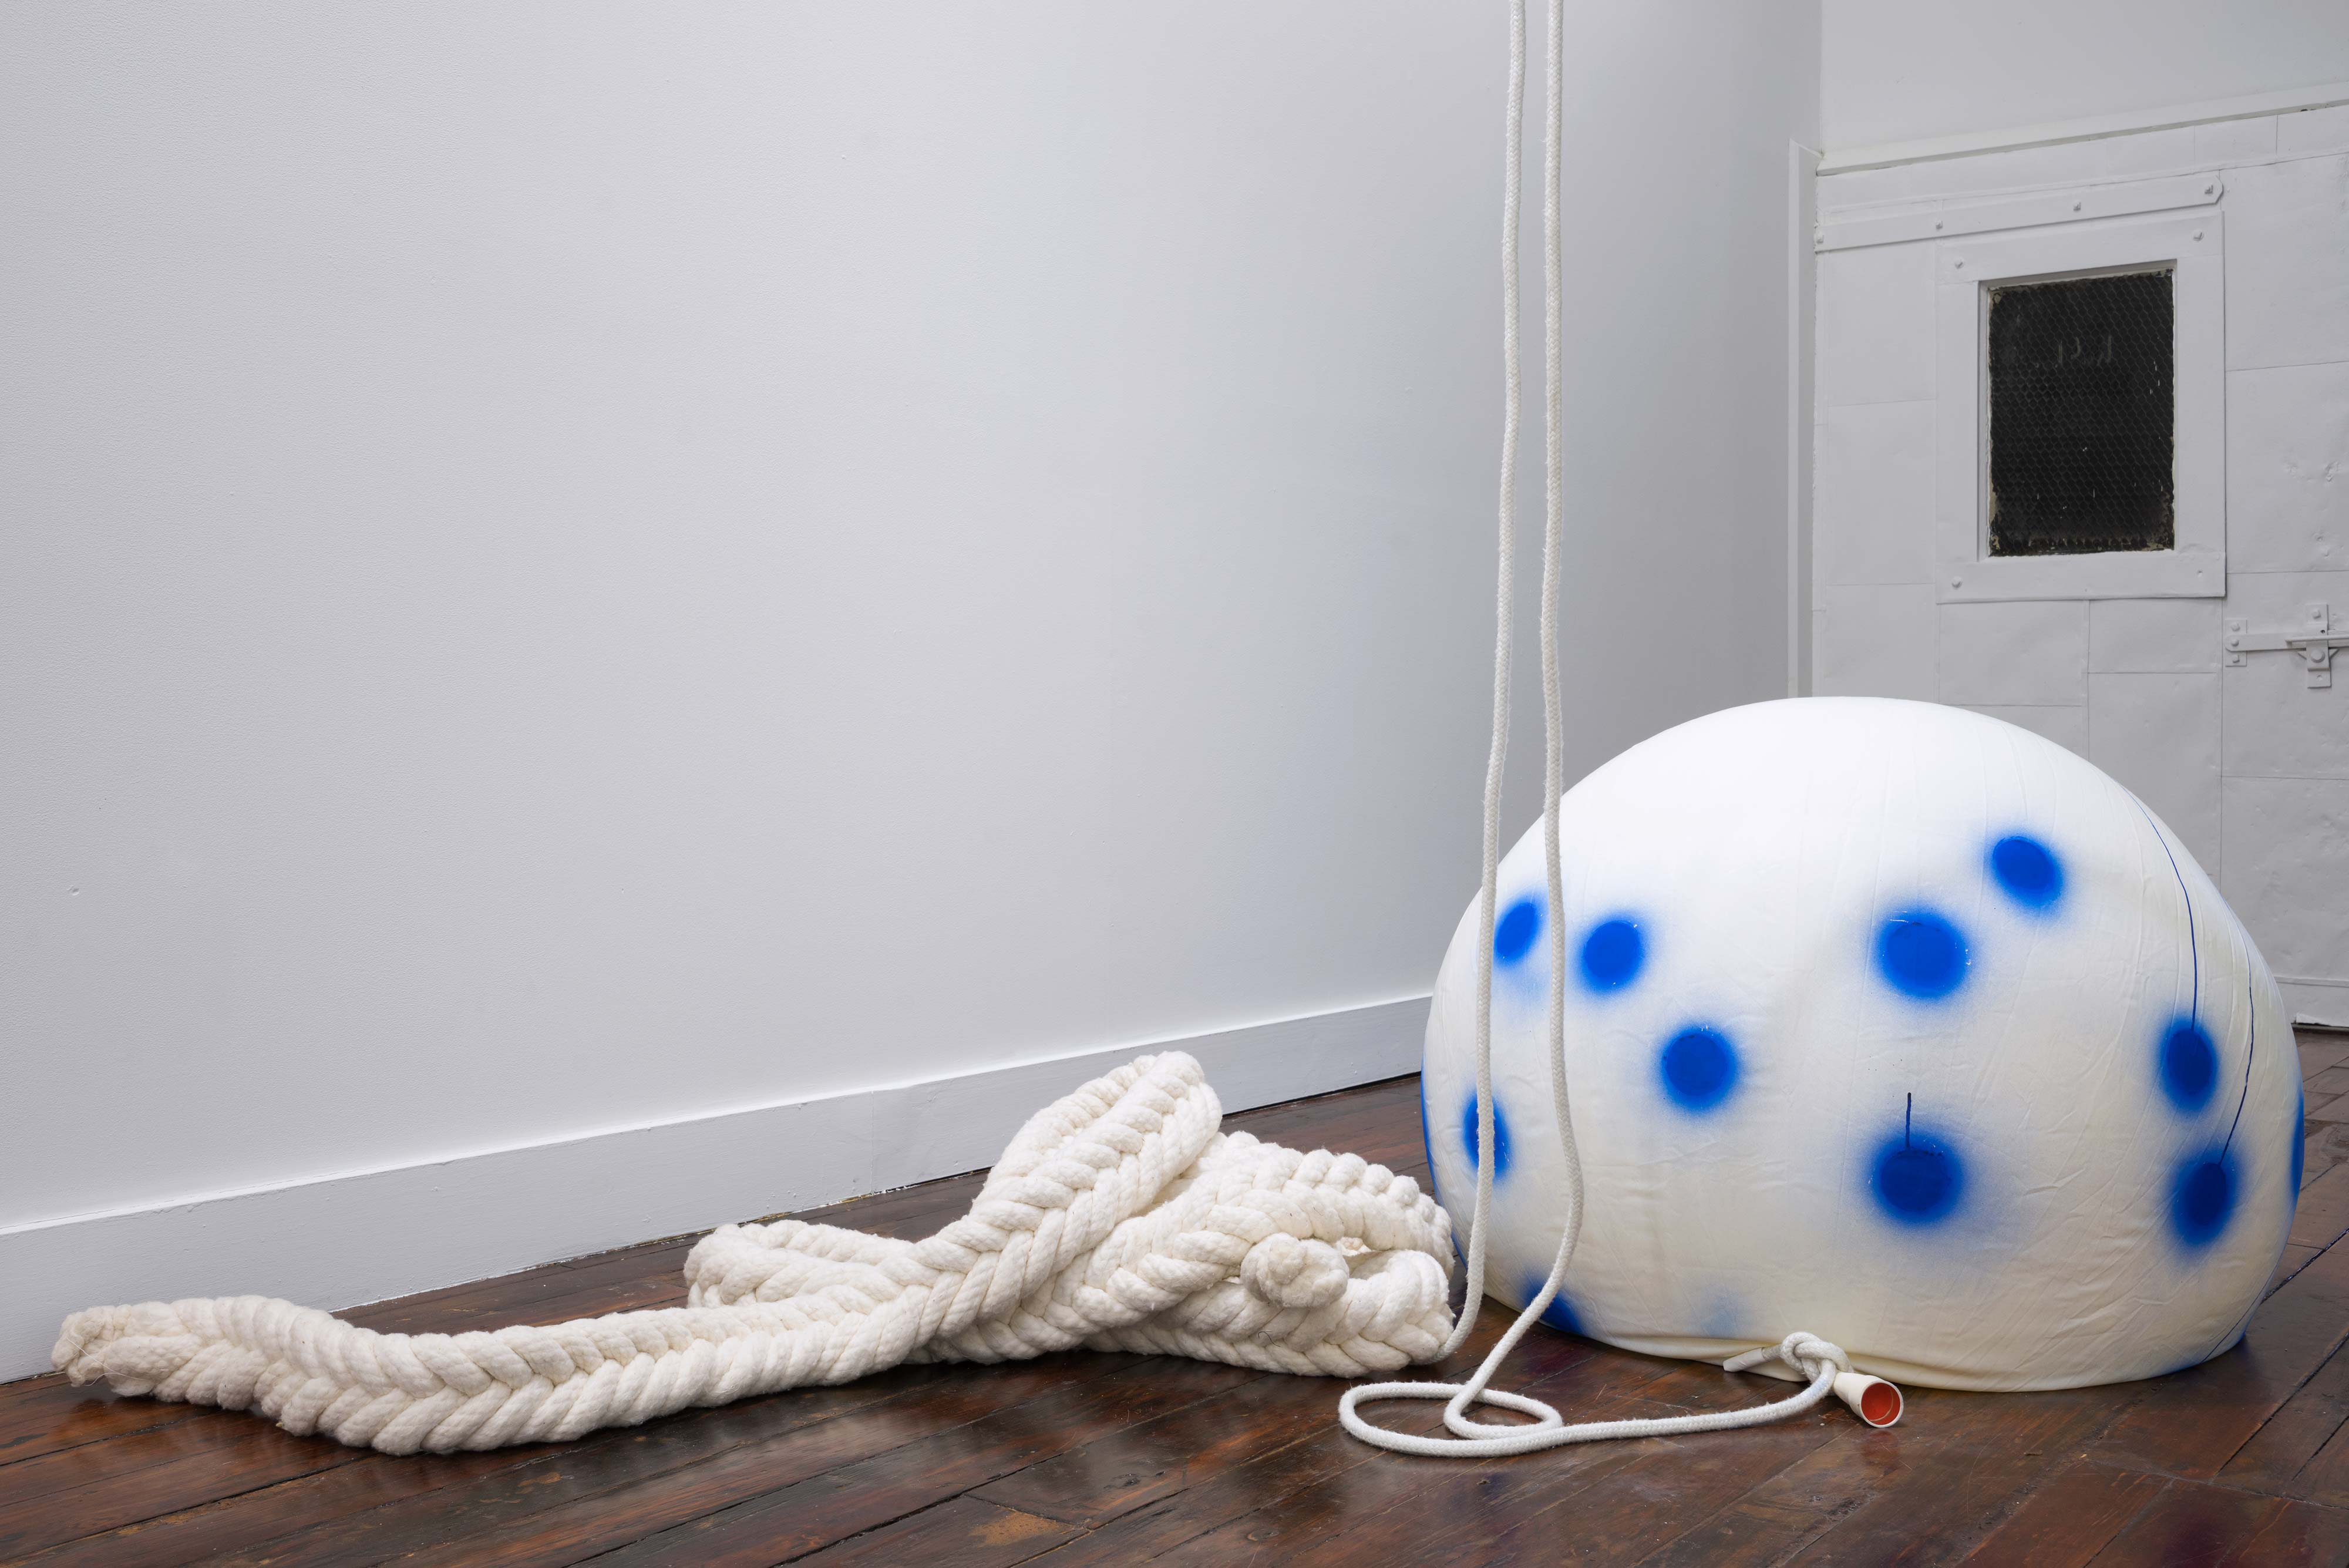 Nancy Davidson<br>Fallen Cloud (1)<br>1997-2016<br>latex, rope, paint, cotton<br>36 x 36 in (91 x 91 cm)<br>height variable